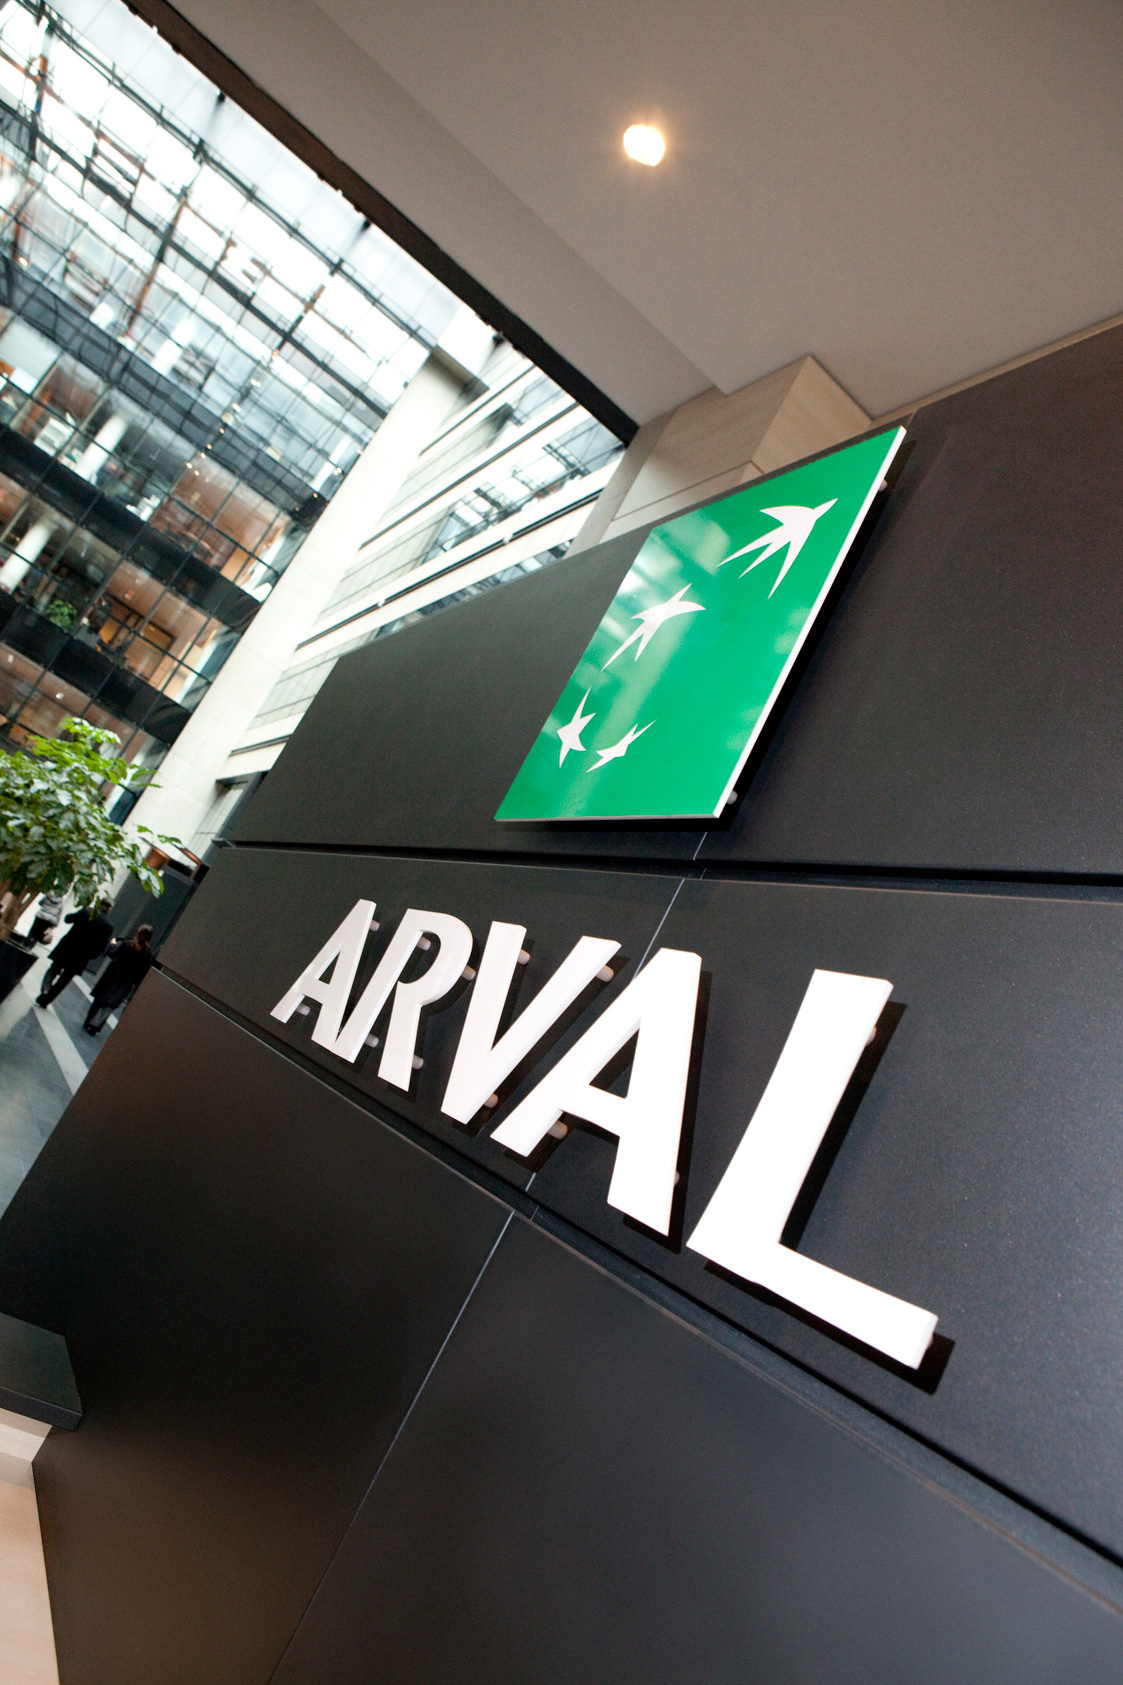 About Arval UK